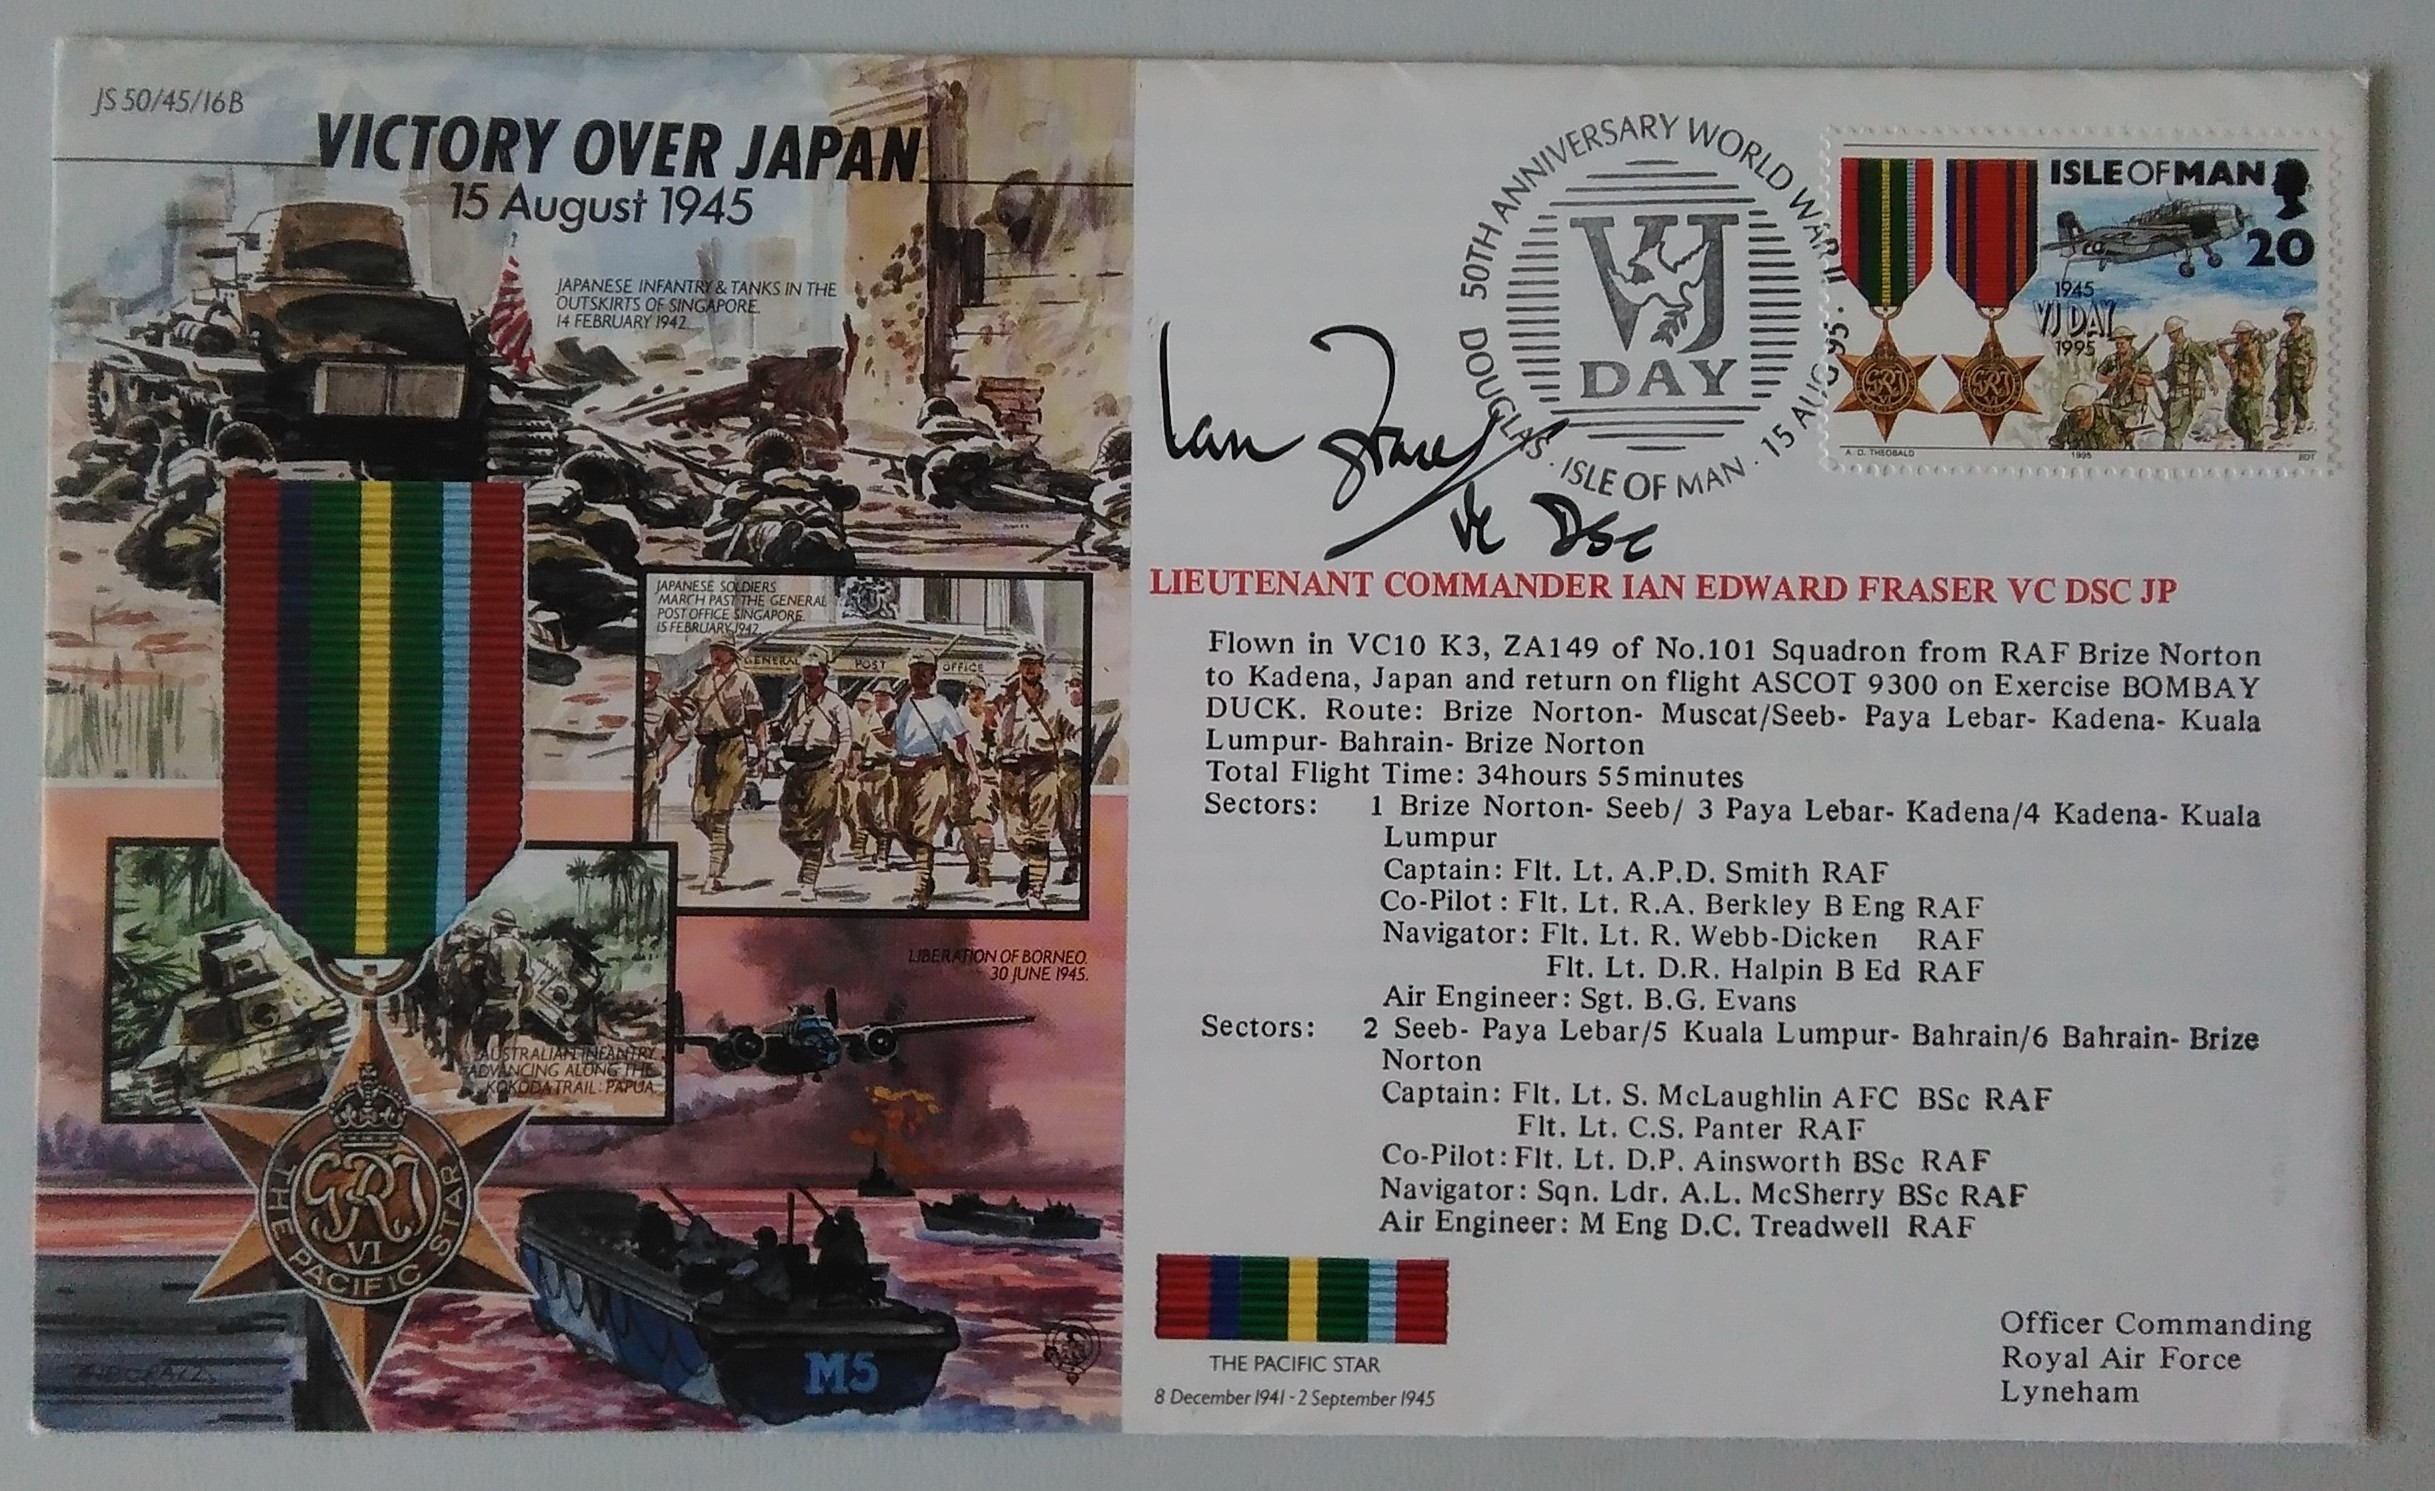 Victory Over Japan 15-8-1945